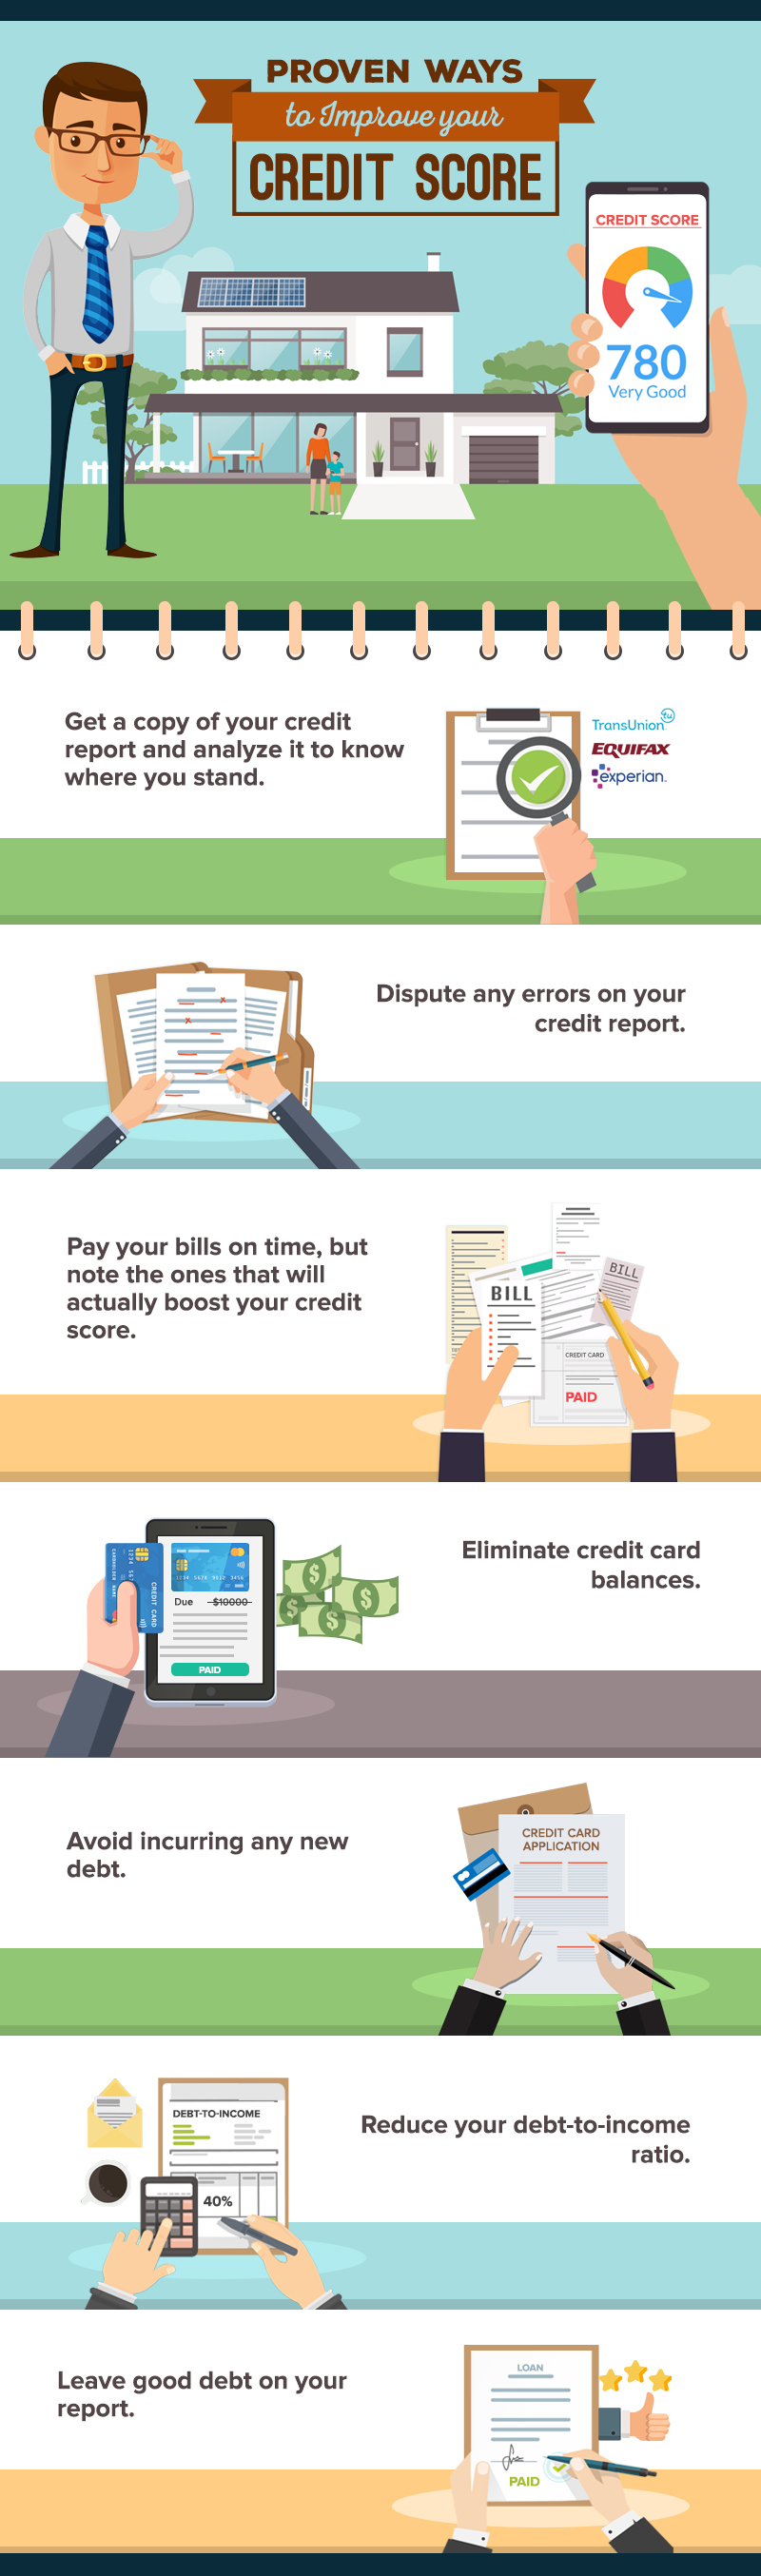 Applying For A Mortgage Loan? Here Are Proven Ways To Improve Your Credit Score